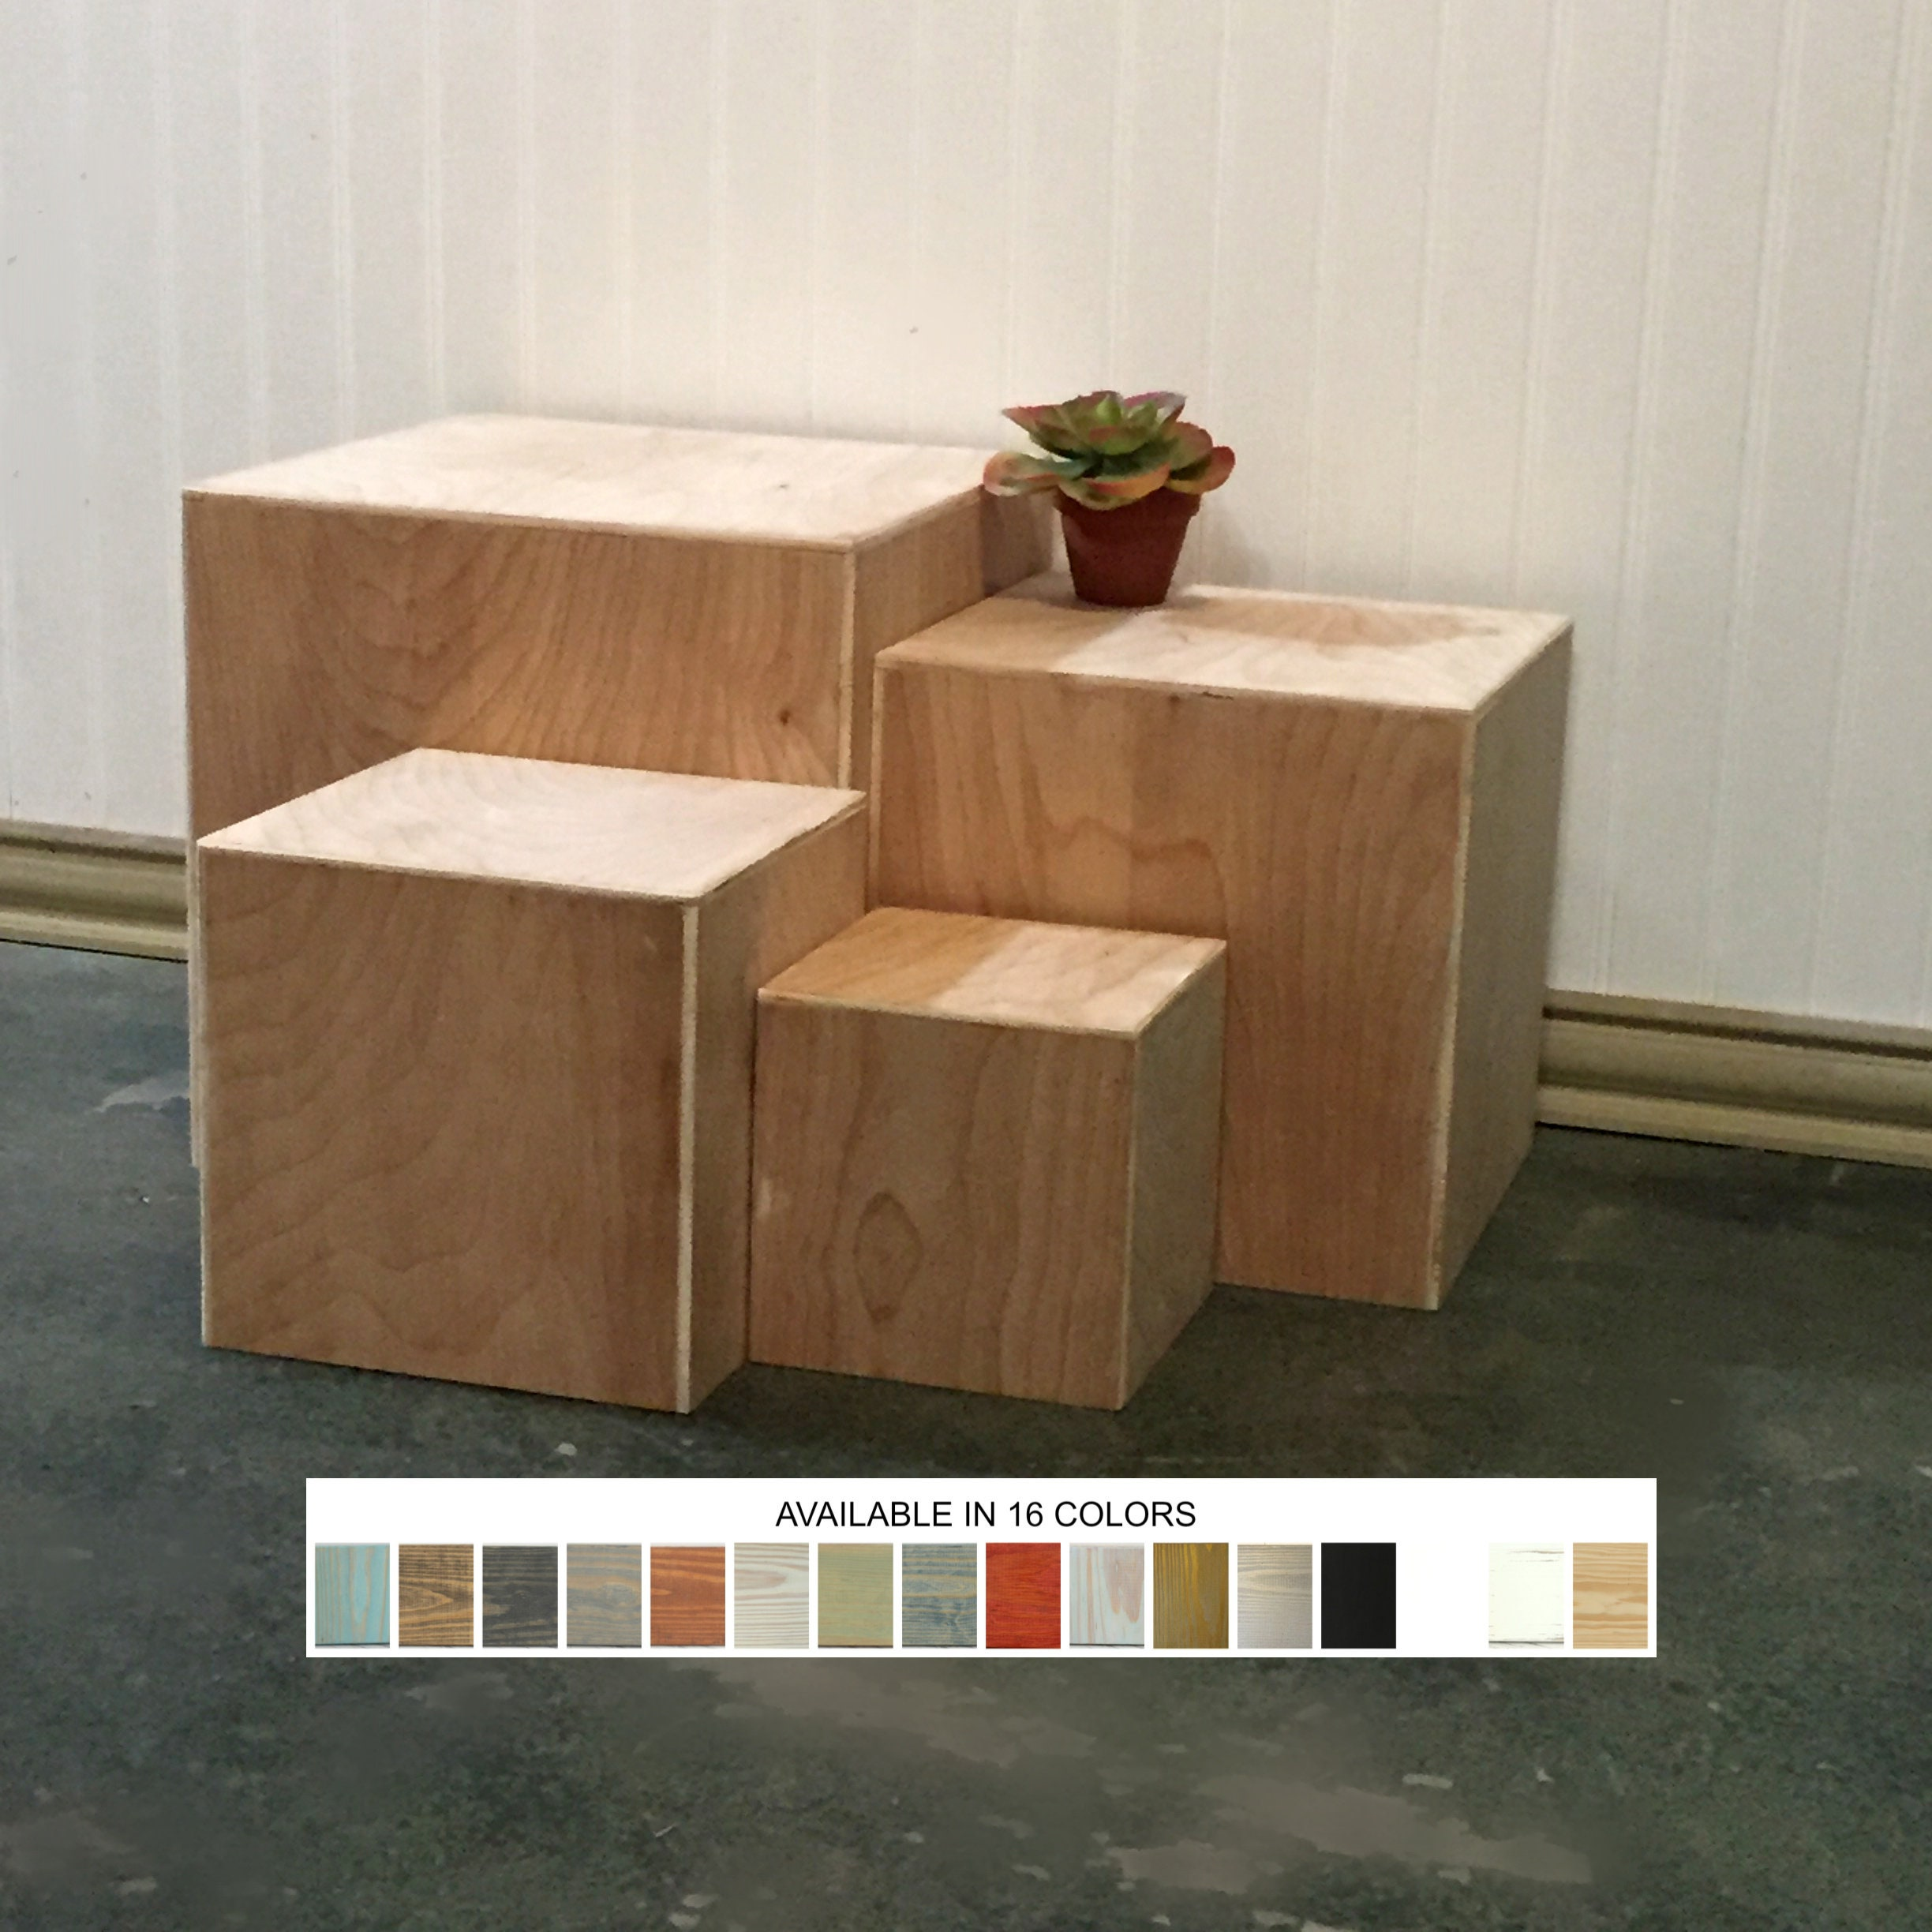 Display Boxes Nesting Tables Product Stands Risers Set Of 4